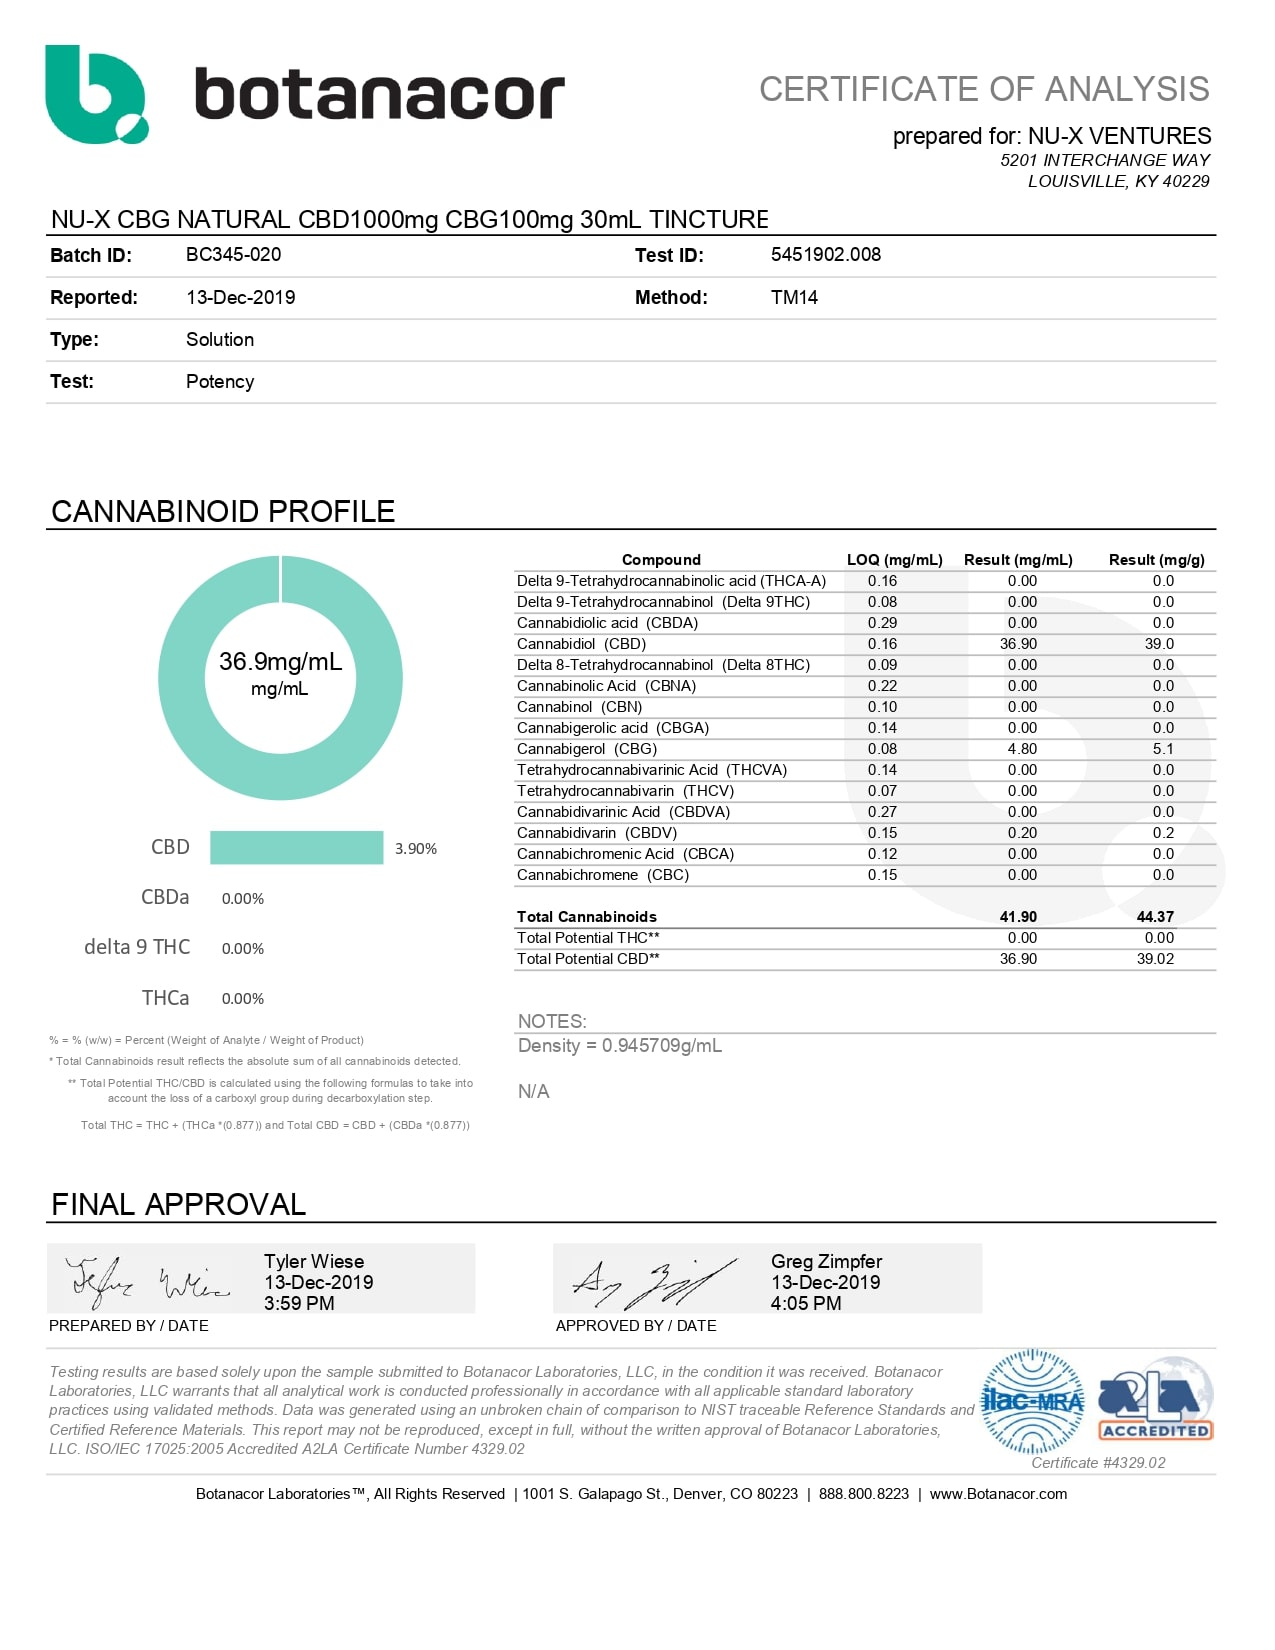 NU-X CBD Natural CBG Tincture + CBD Lab Report 100mg